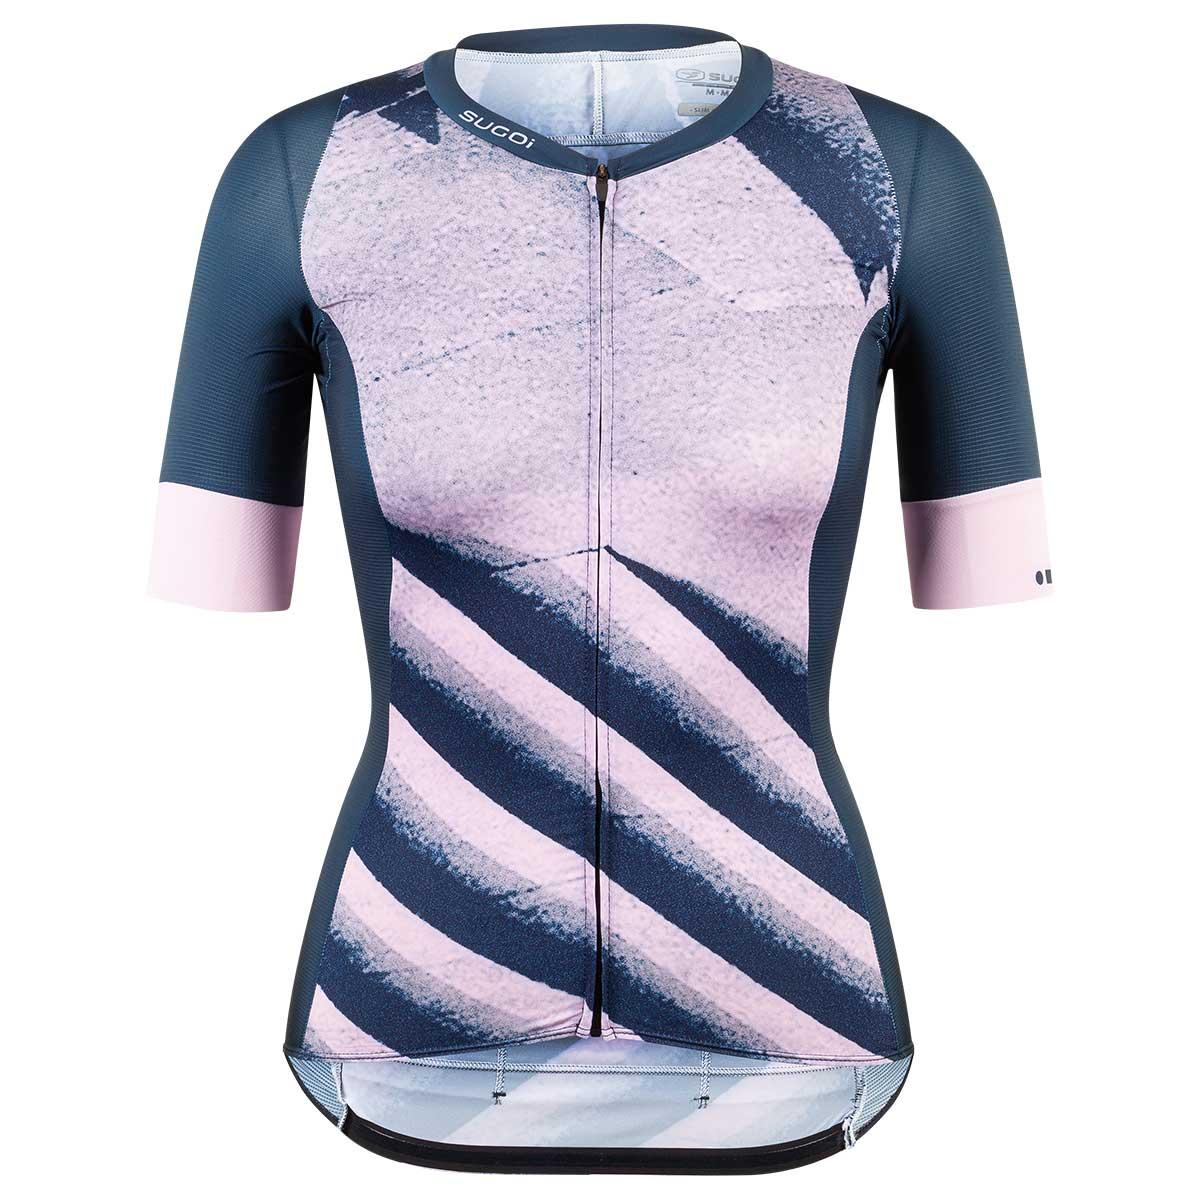 Sugoi women's RS Pro Jersey in Urban Shadows